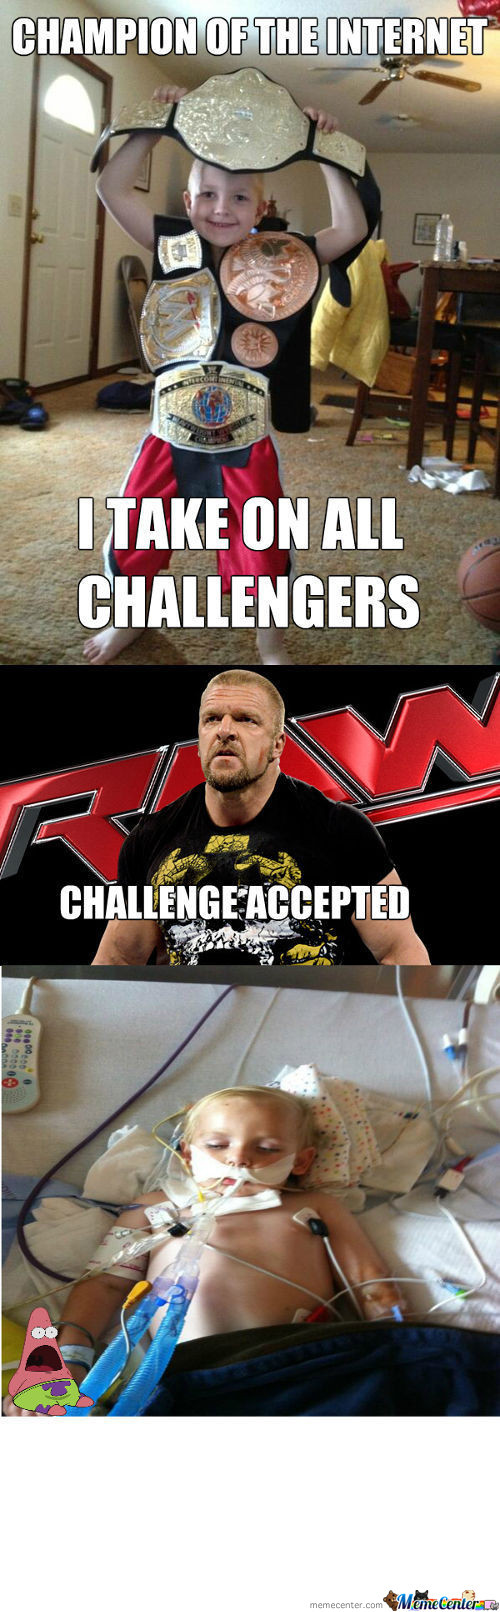 Take On All Challengers